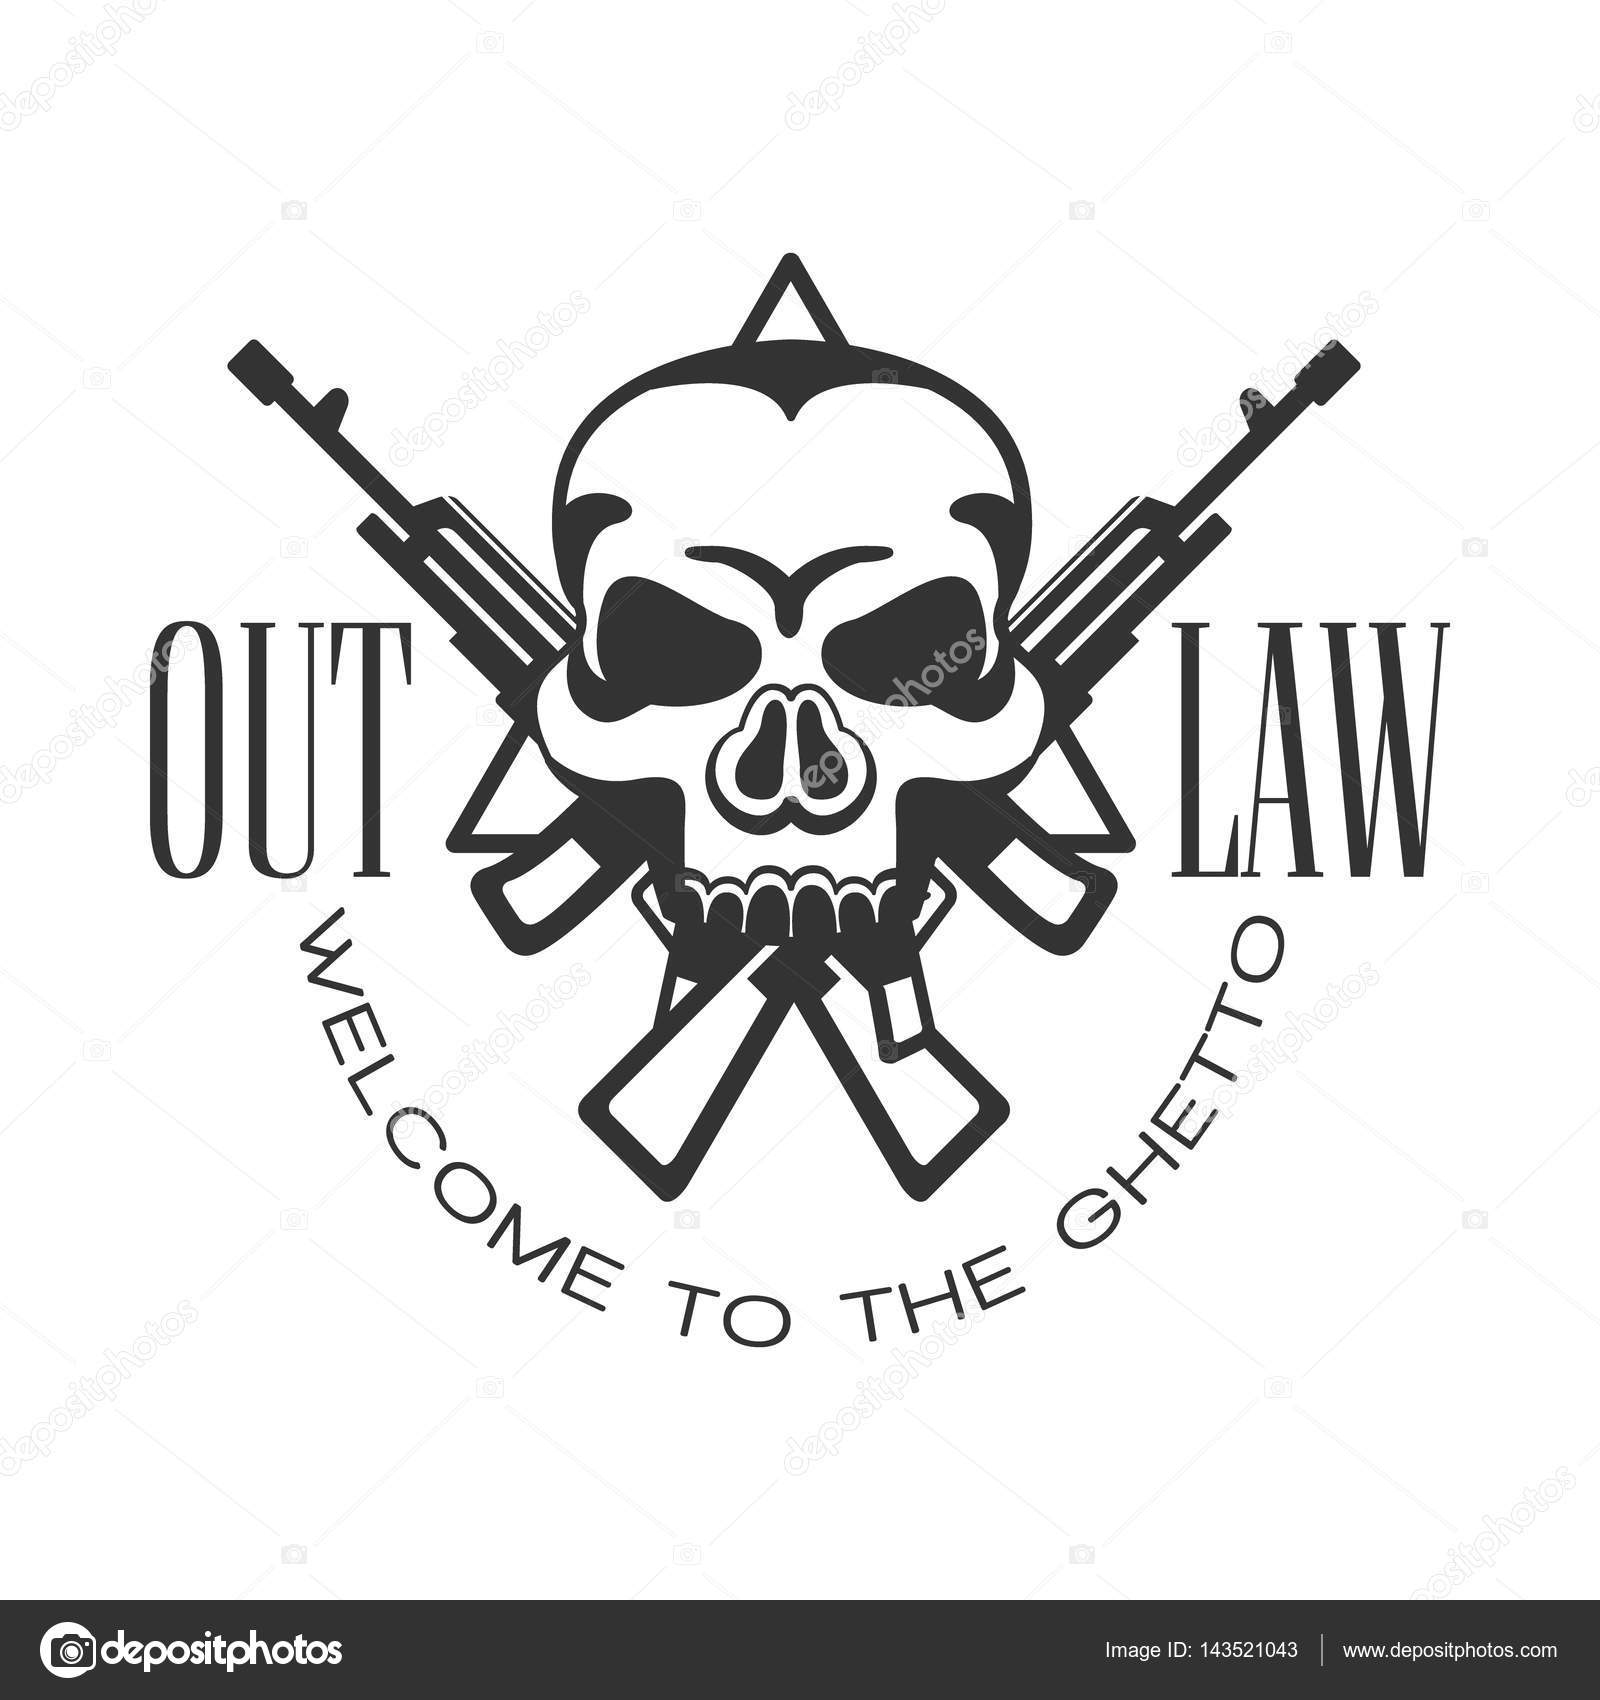 Criminal outlaw street club black and white sign design template criminal outlaw street club black and white sign design template with text crossed guns and scull monochrome vector emblem with ghetto symbols for prints biocorpaavc Images